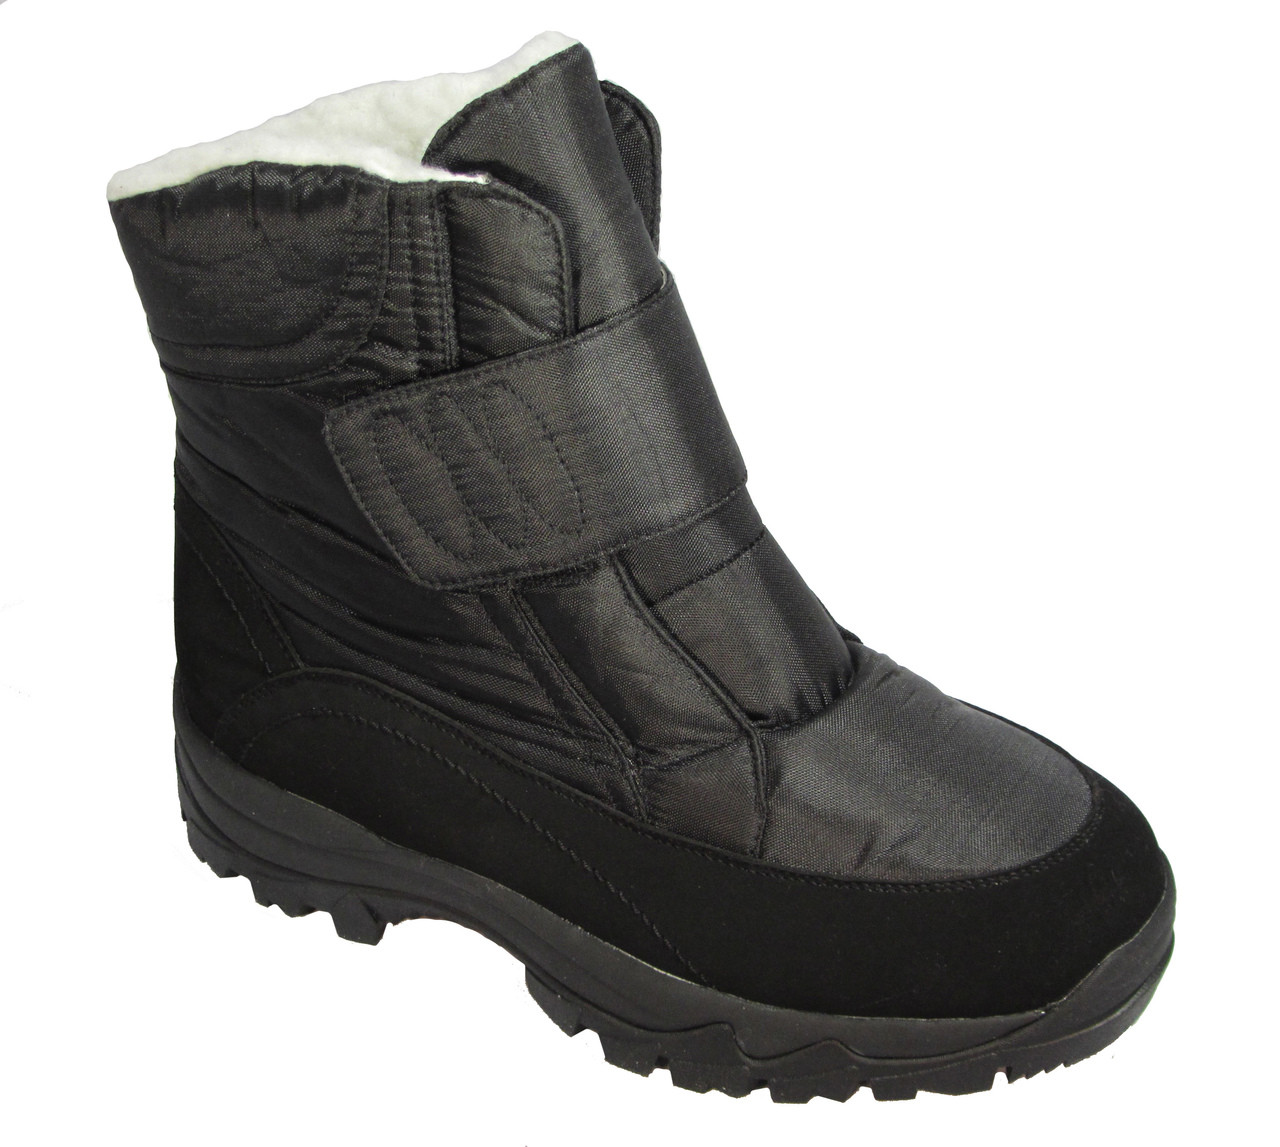 a74a6e4584f Ciabattas™ Waterproof Winter Half Boot - Velcro Closure